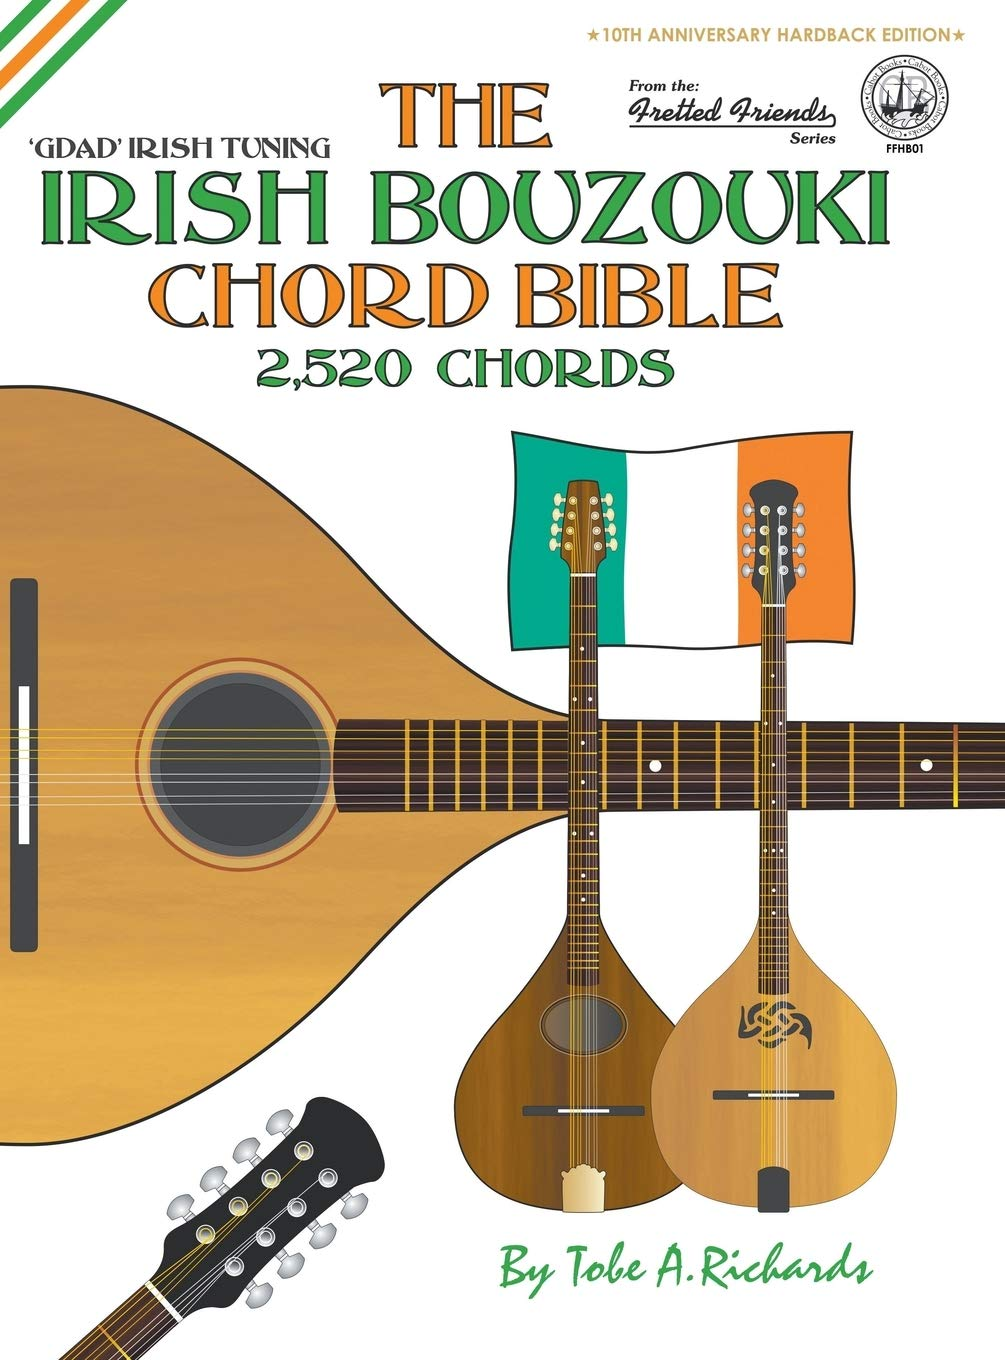 The Irish Bouzouki Chord Bible: GDAD Irish Tuning 2,520 Chords ...